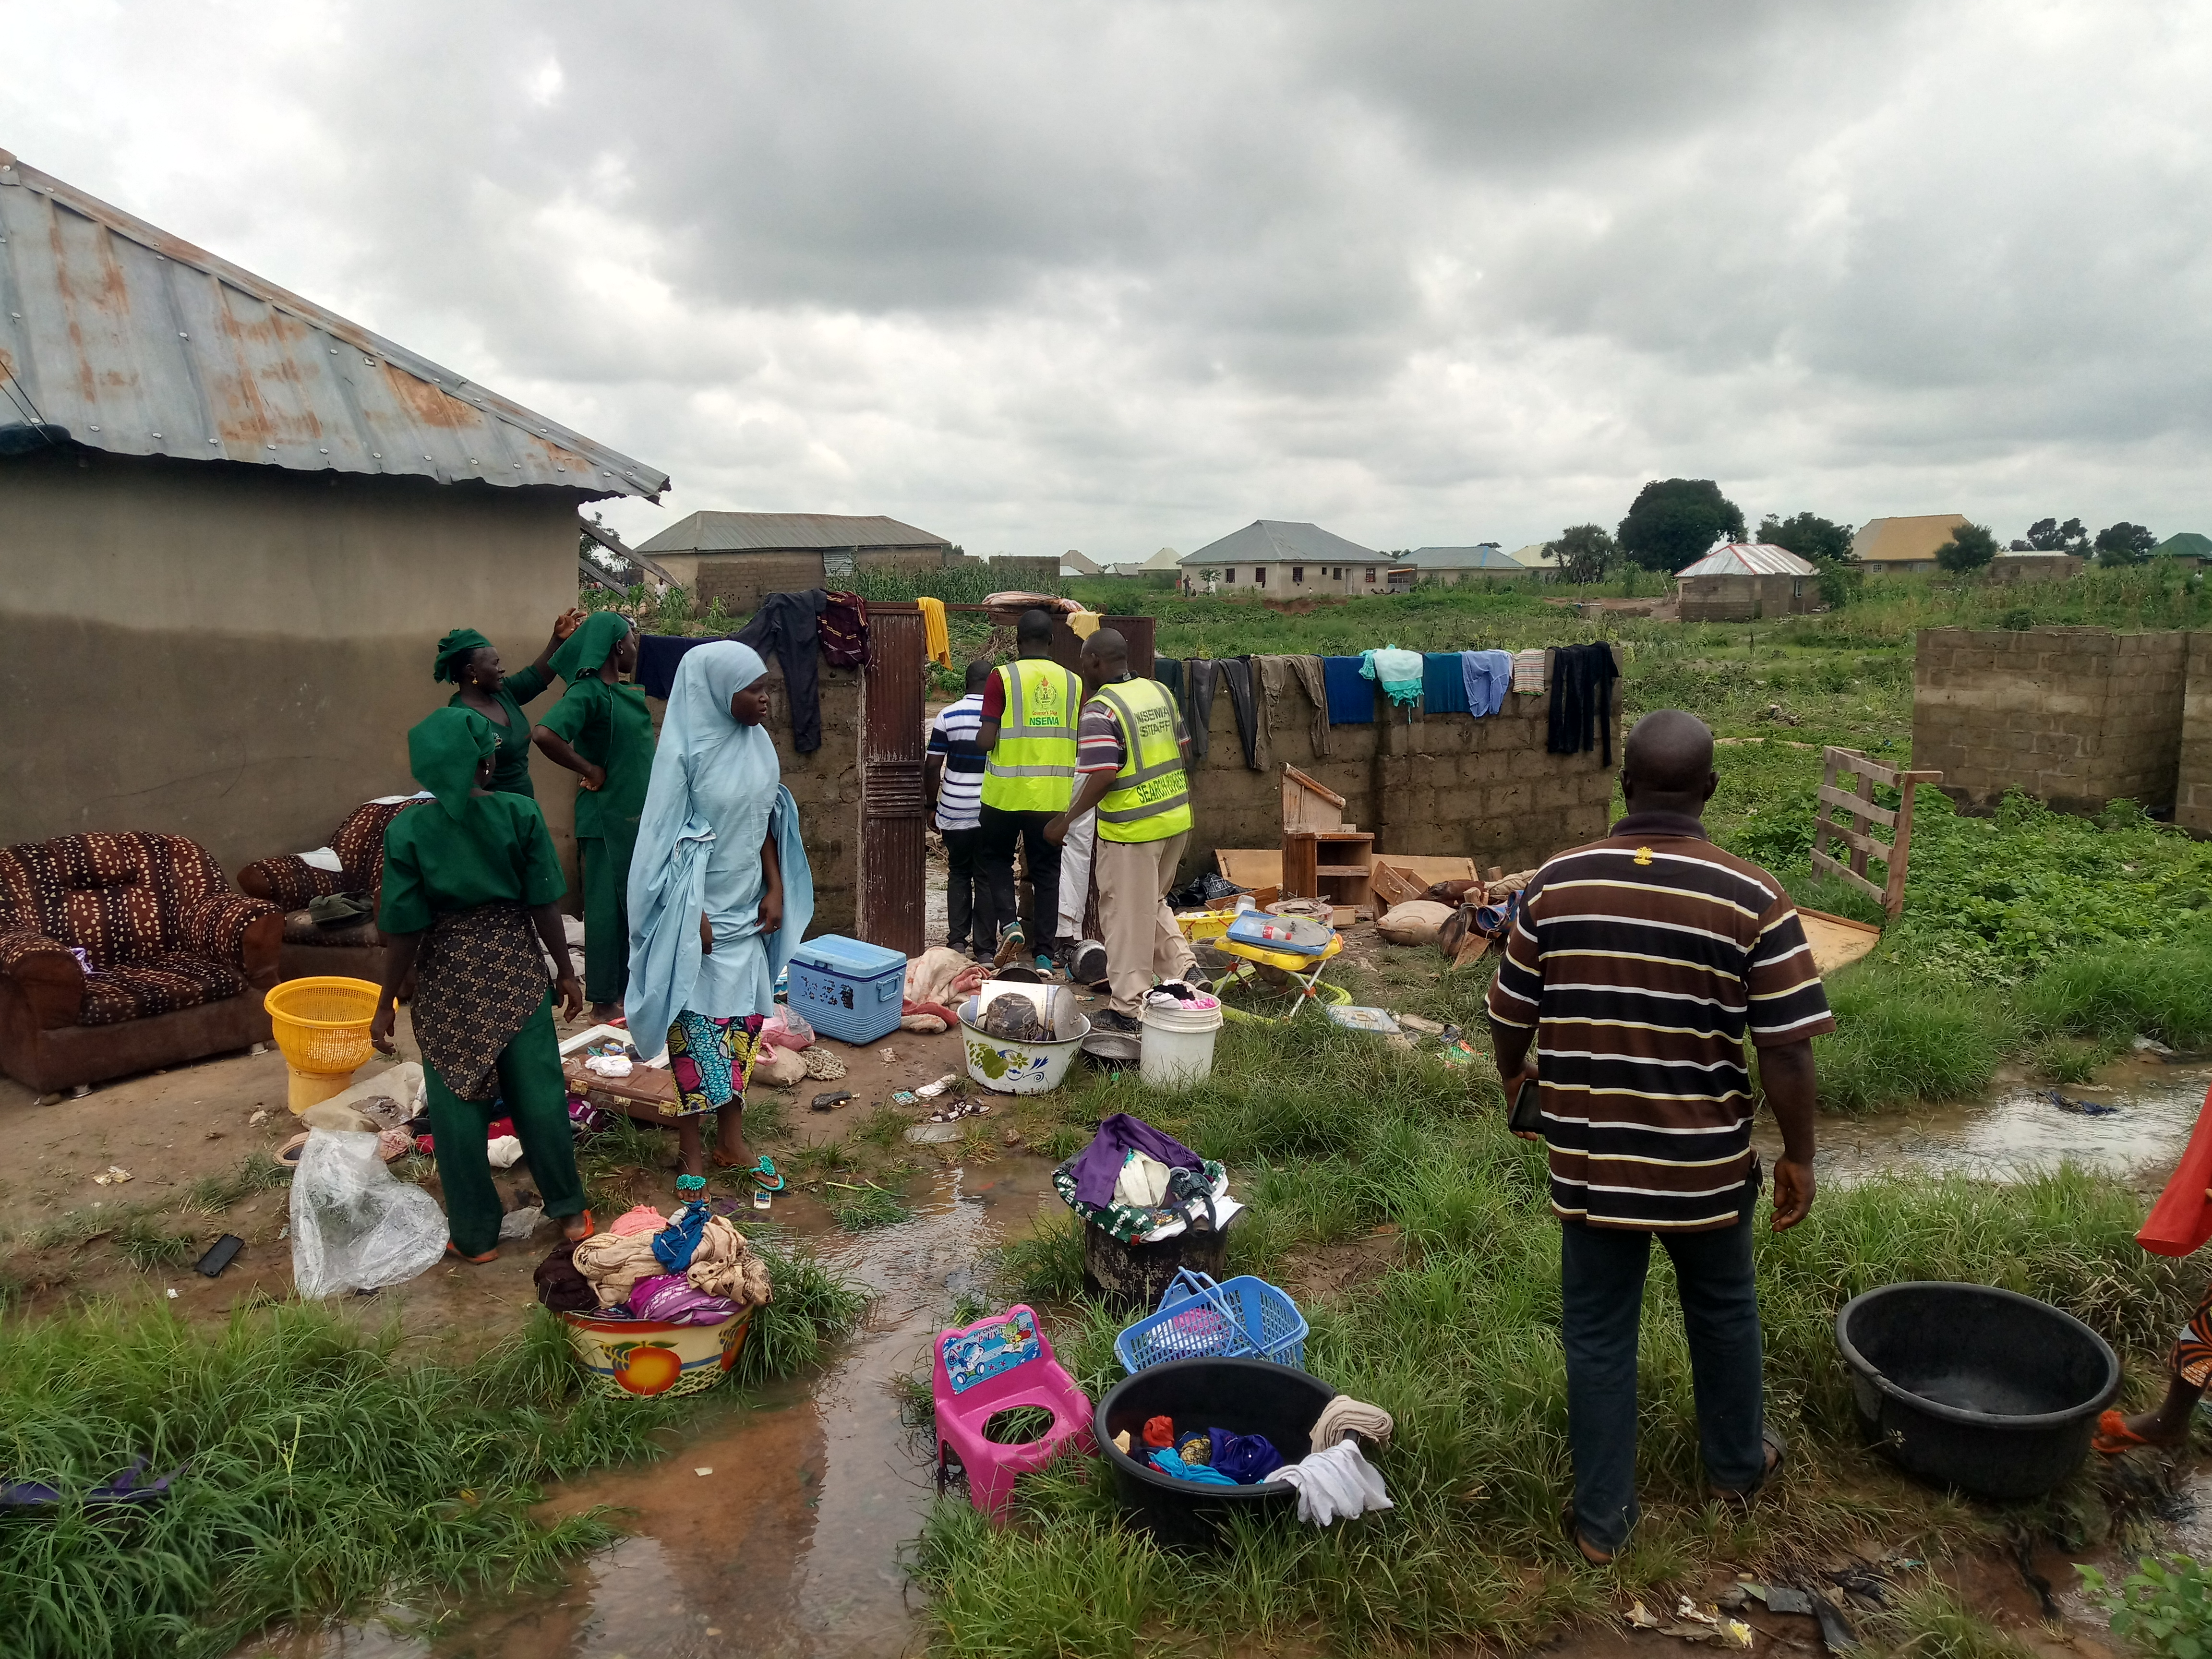 Flood claims 3 lives, submerges over 20 houses in Niger